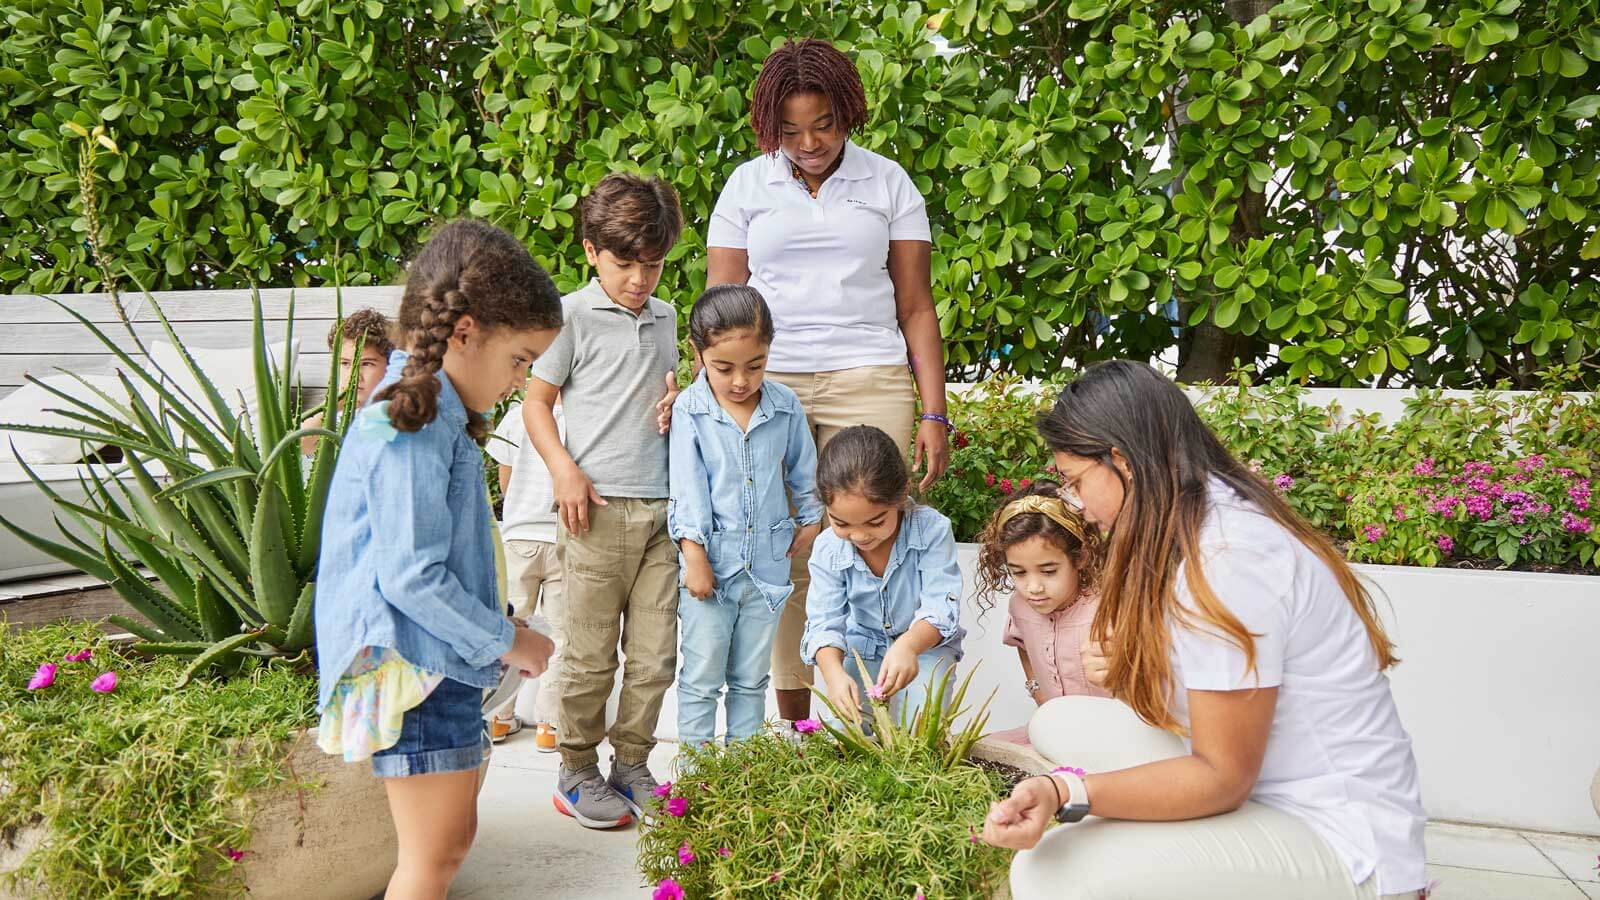 Children learning about plants and wildlife